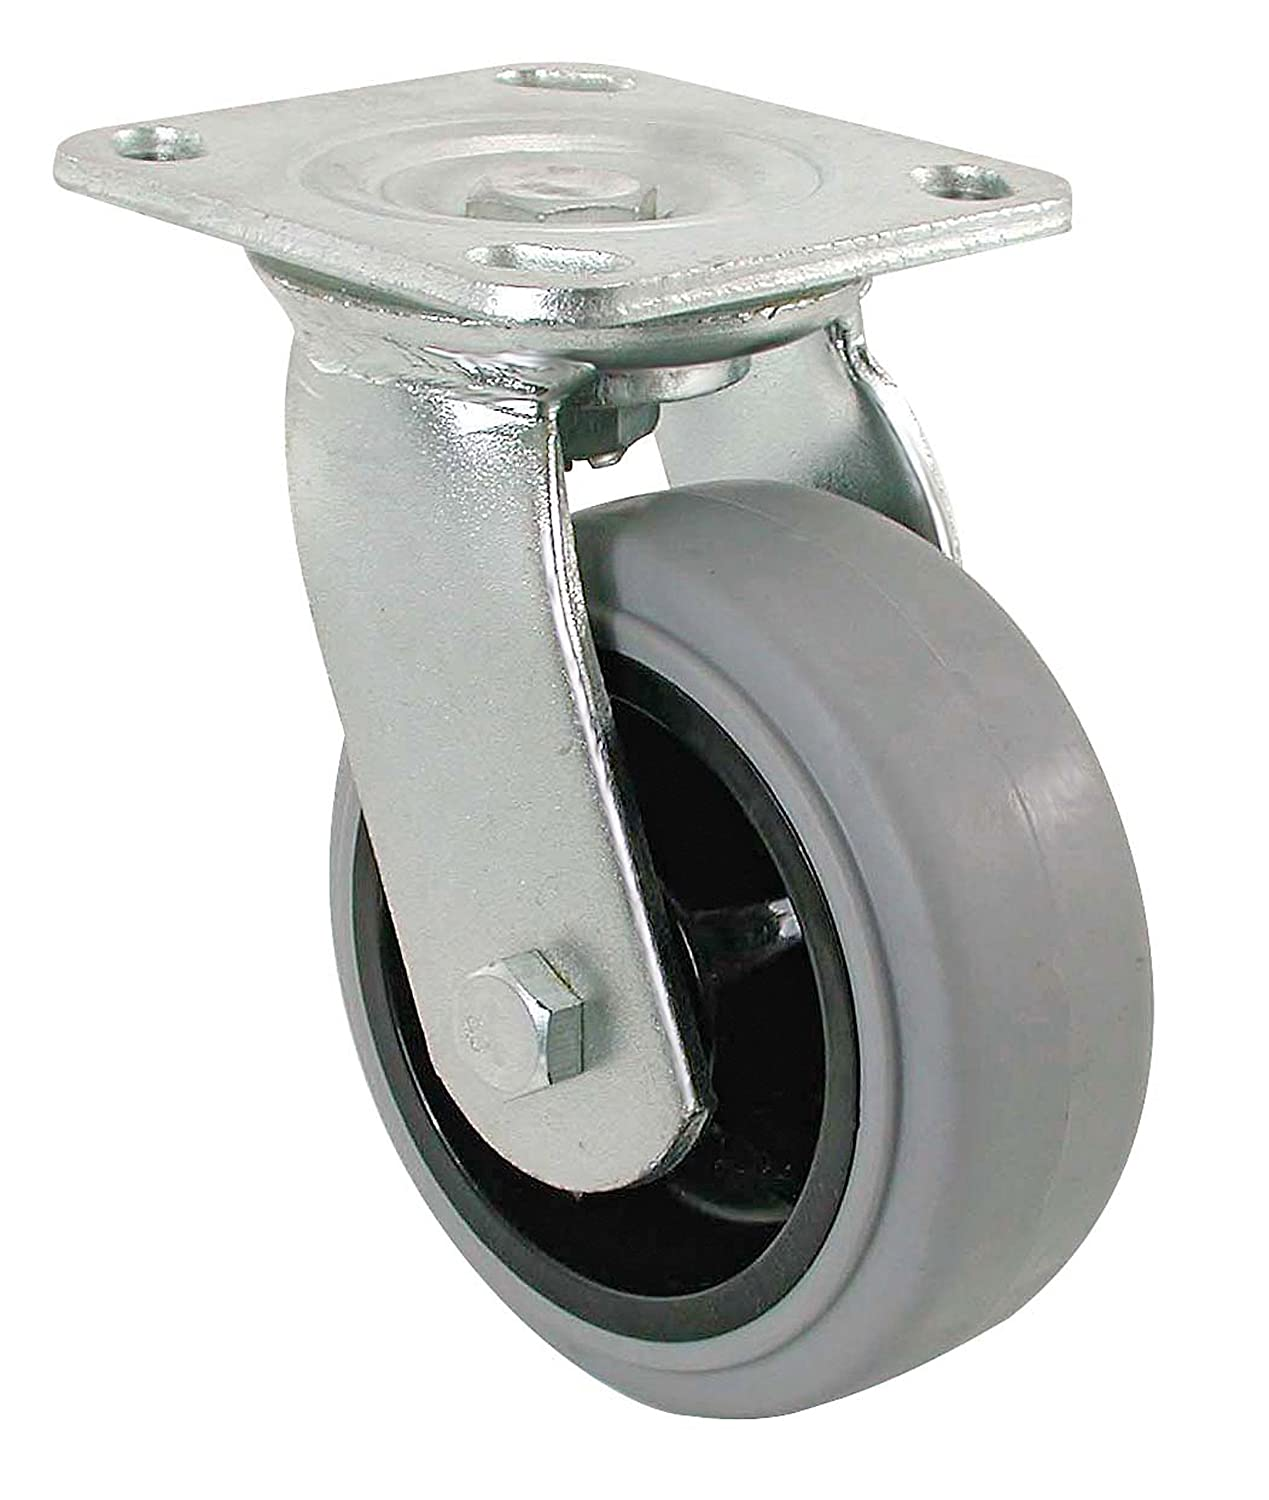 550-lb Load Capacity Shepherd Hardware 3183 6-Inch Thermoplastic Rubber Swivel Plate Caster